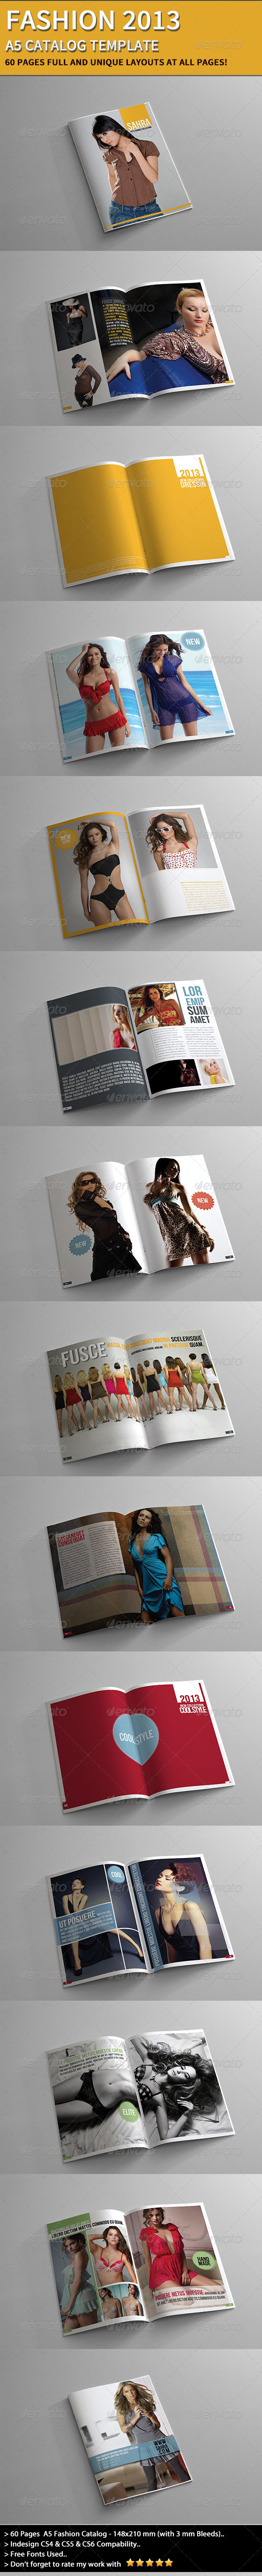 Fashion Catalog 2013